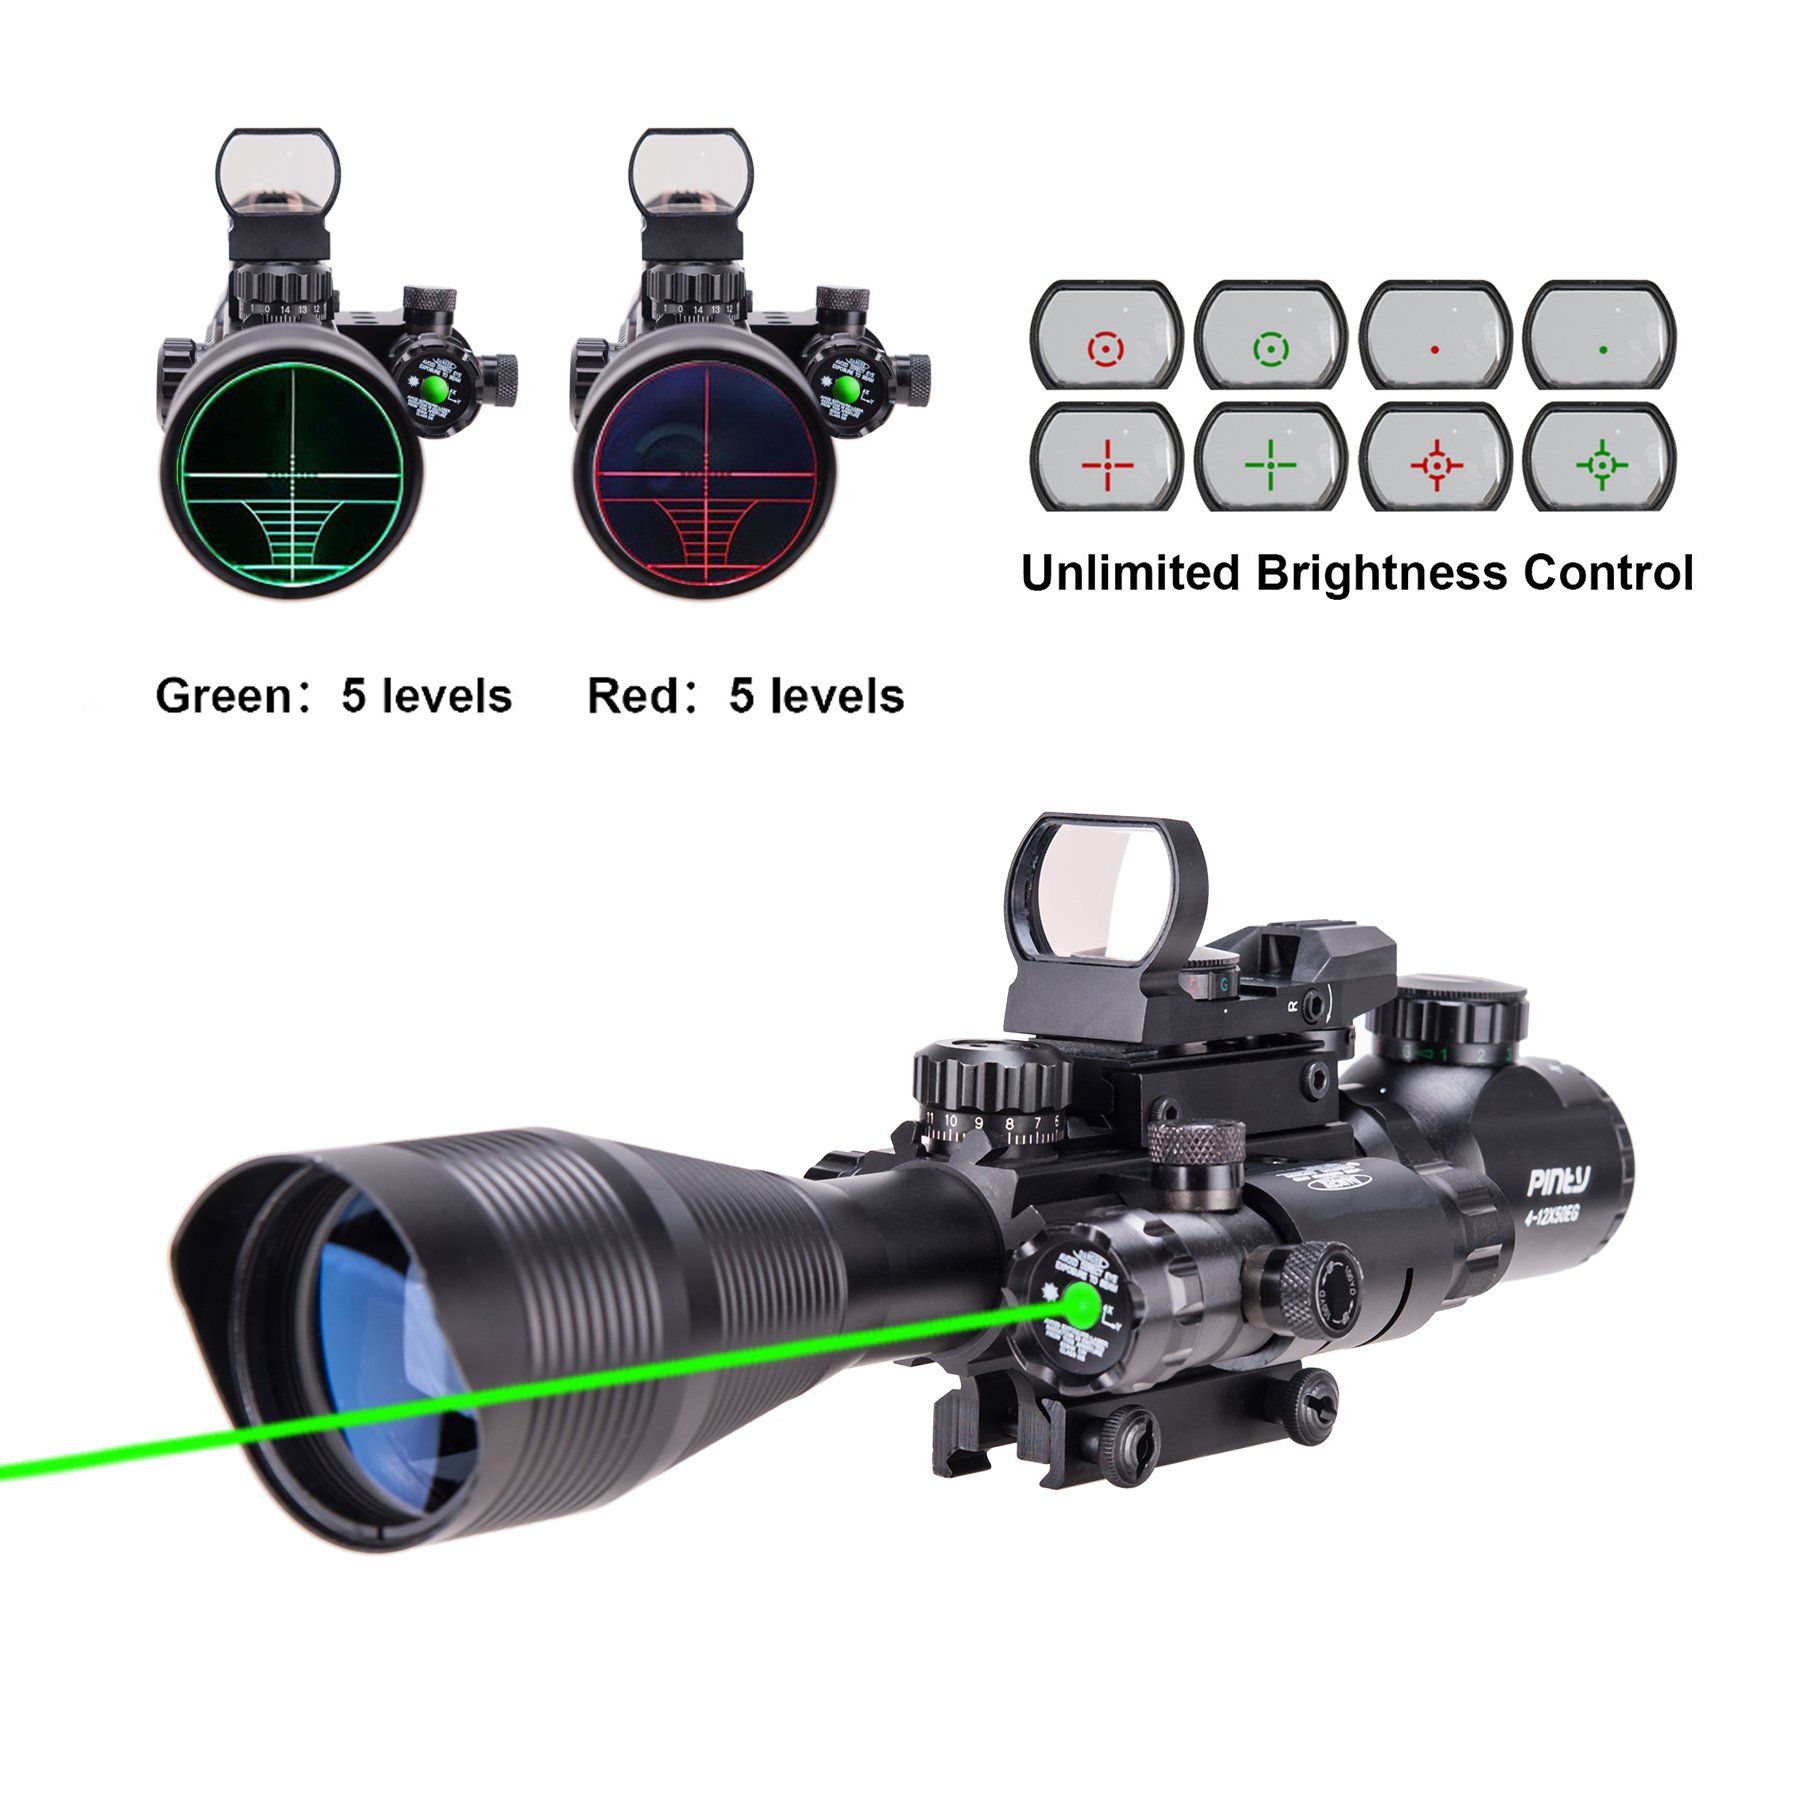 Pinty Rifle Scope 4-12x50 Rangefinder Illuminated Optics with 4 Reticle Red Green Reflex Sight, Green Dot Laser Sight by Pinty